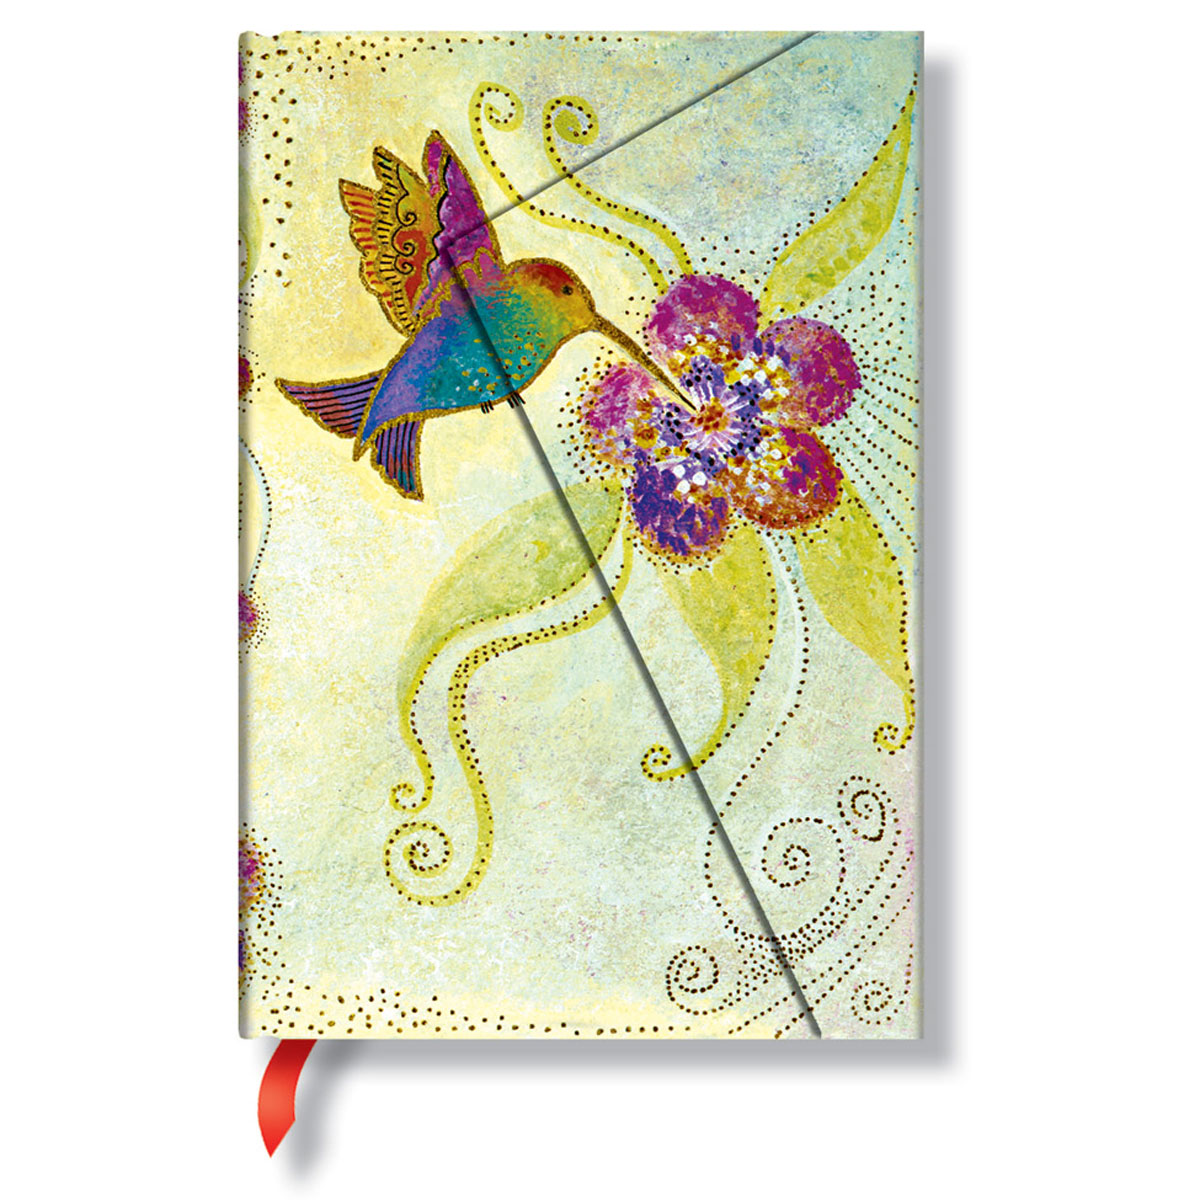 Paperblanks Laurel Burch Hummingbird Mini 4 x 5.5 Inch Journal